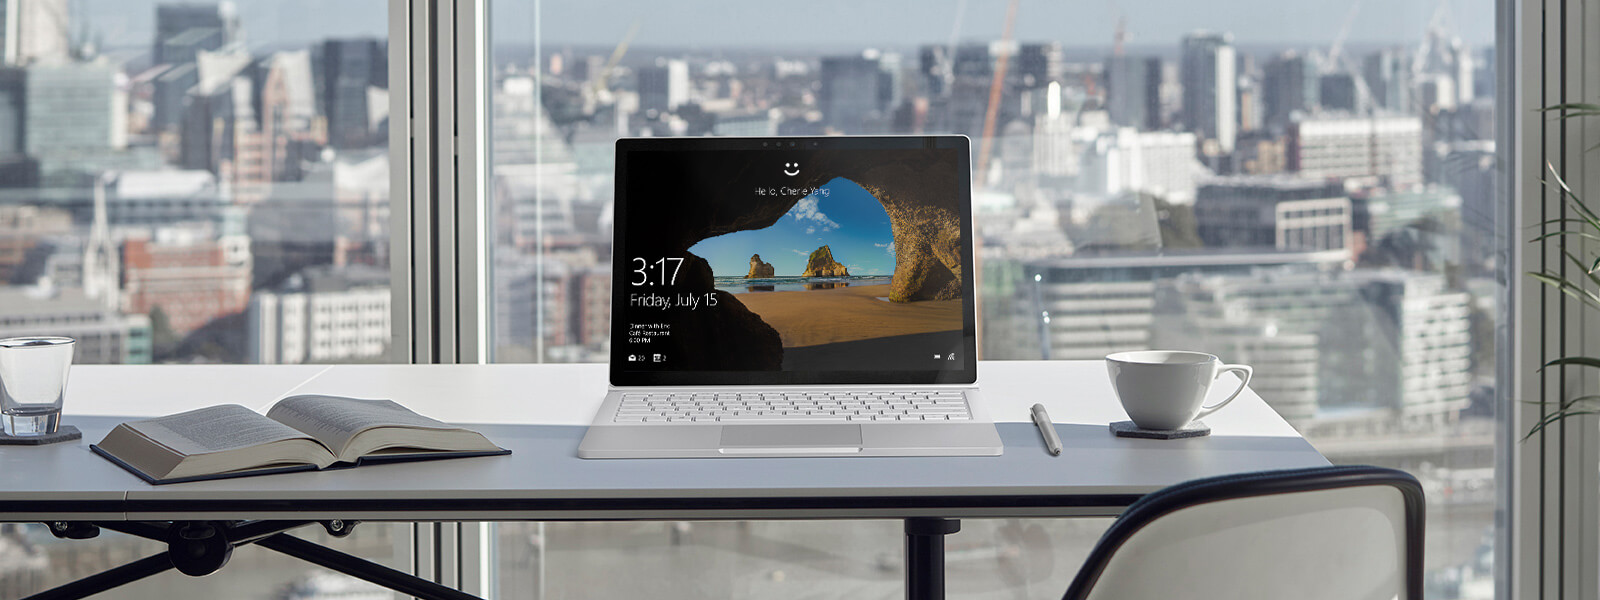 Surface Book with Hello screen on a desk, with city view in background.